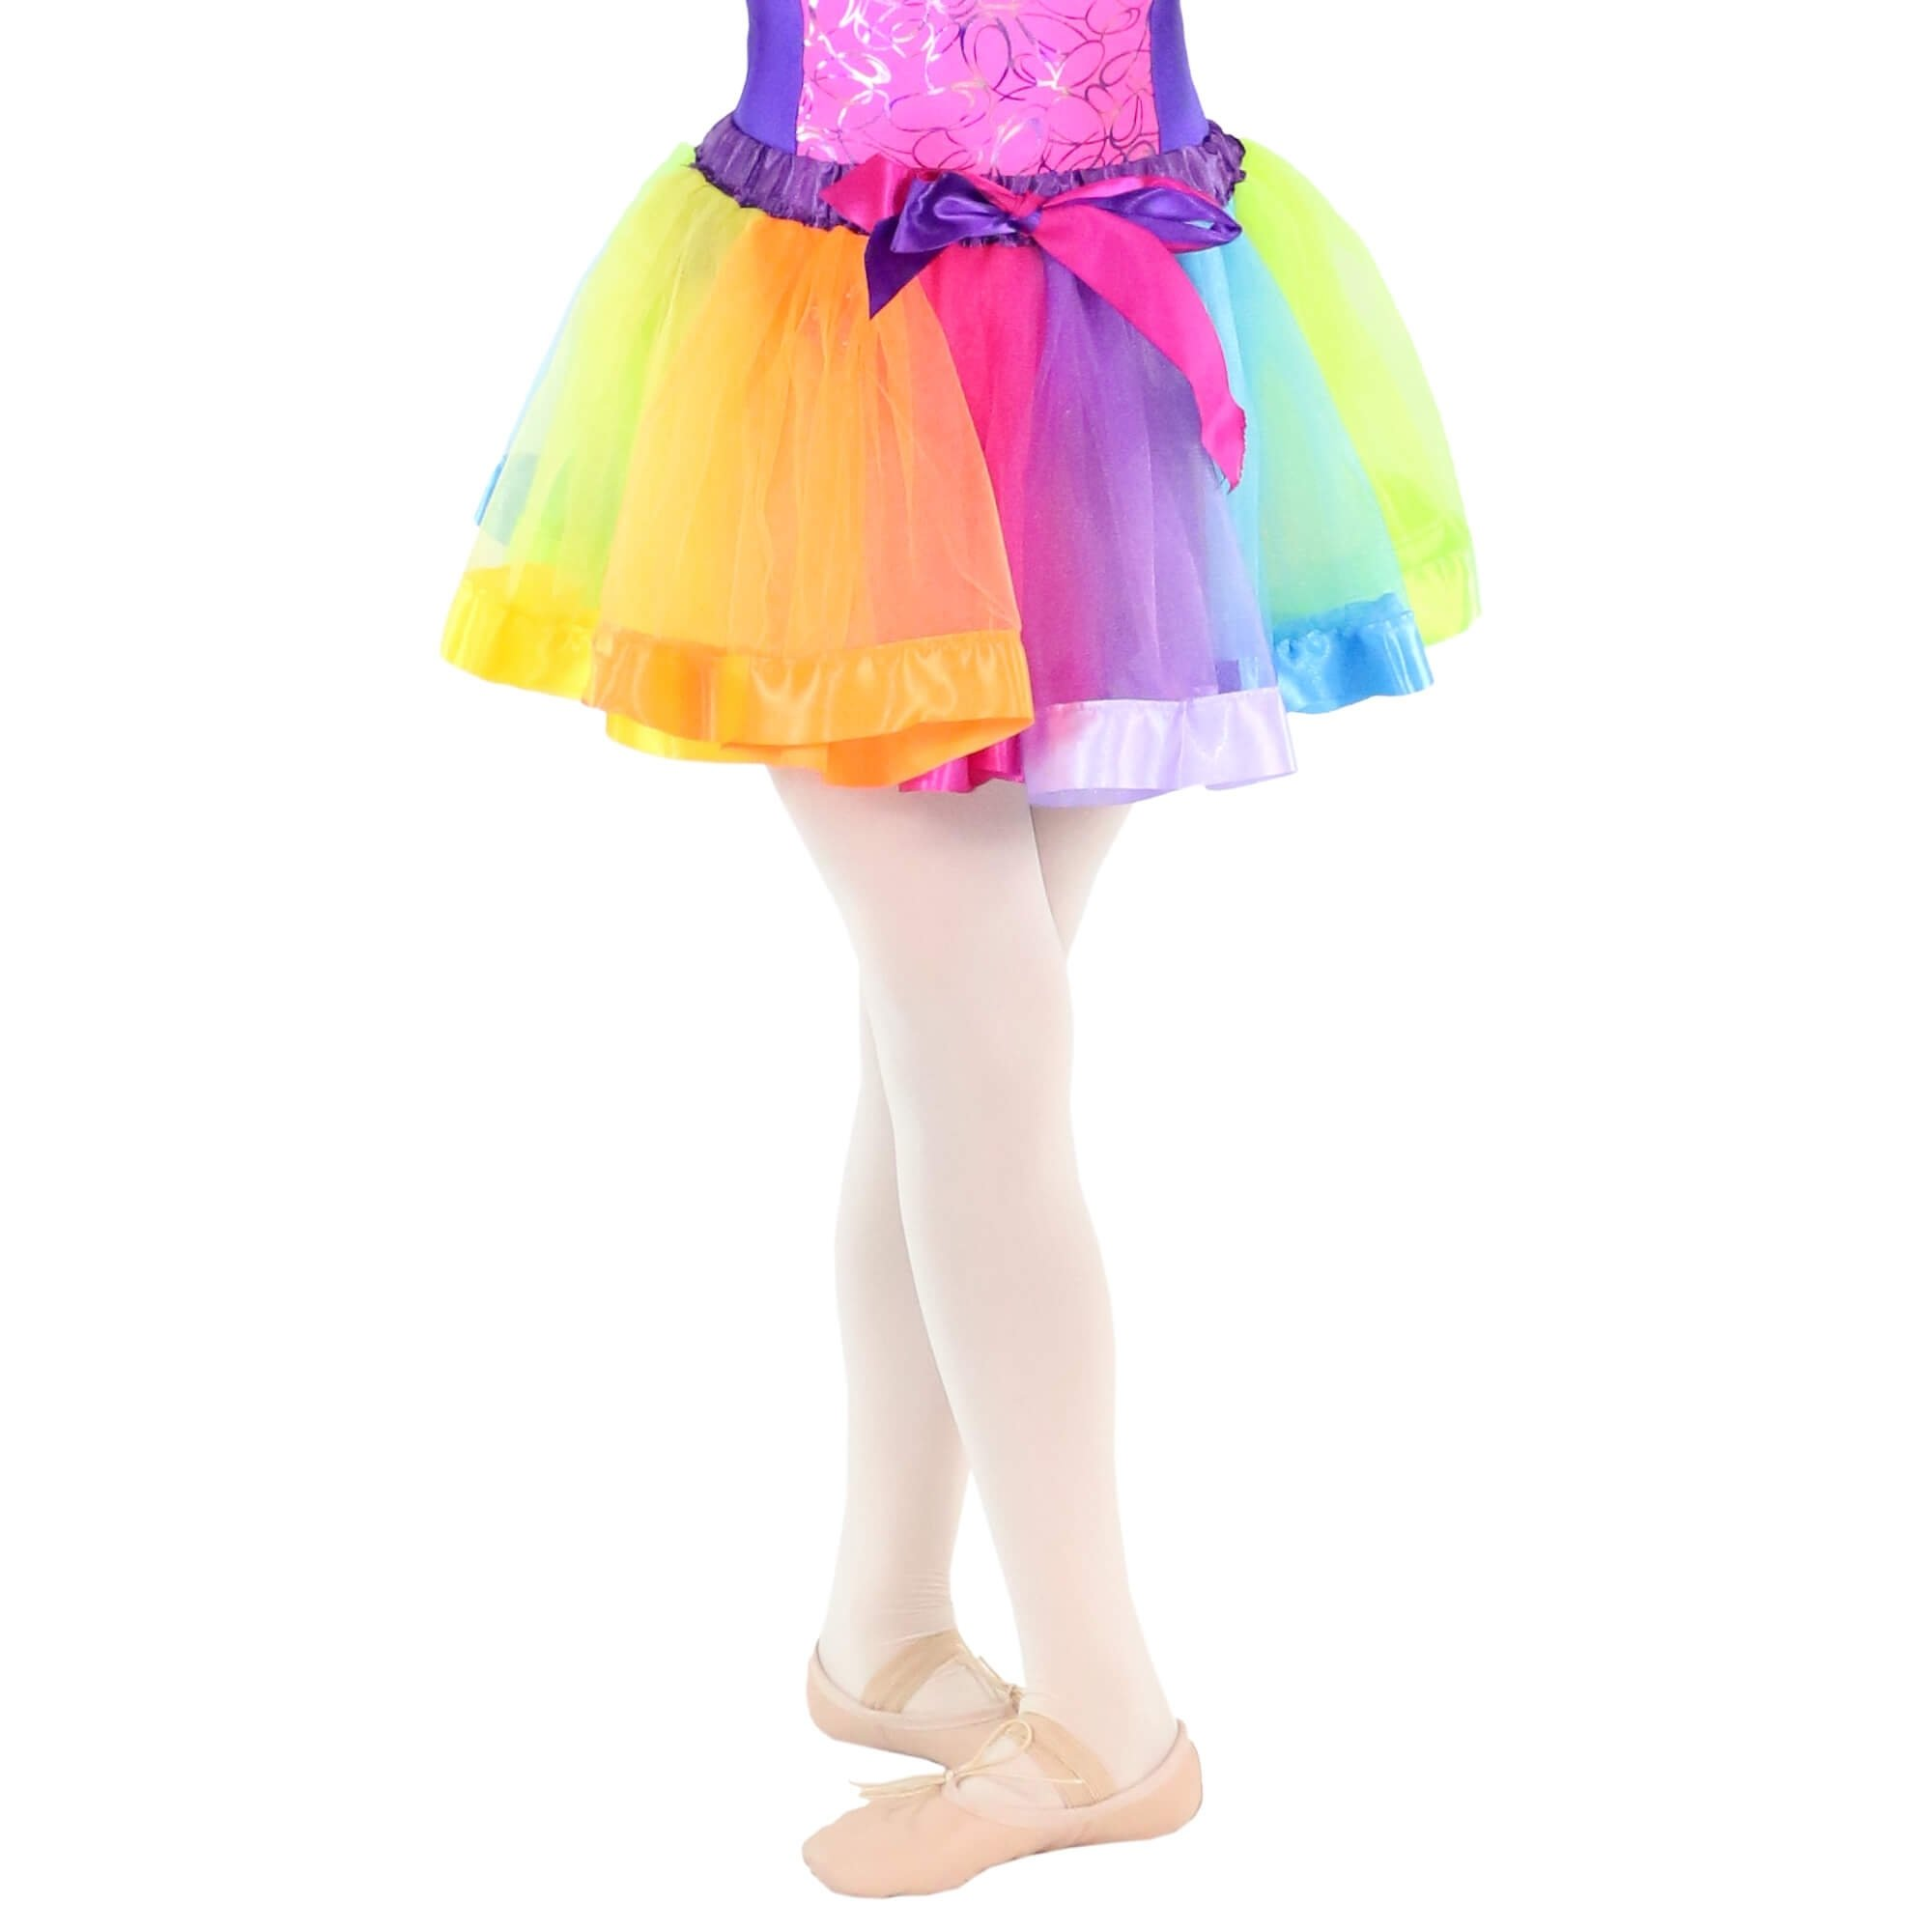 Danzcue Girls Layered Rainbow Dance Tutu Skirt